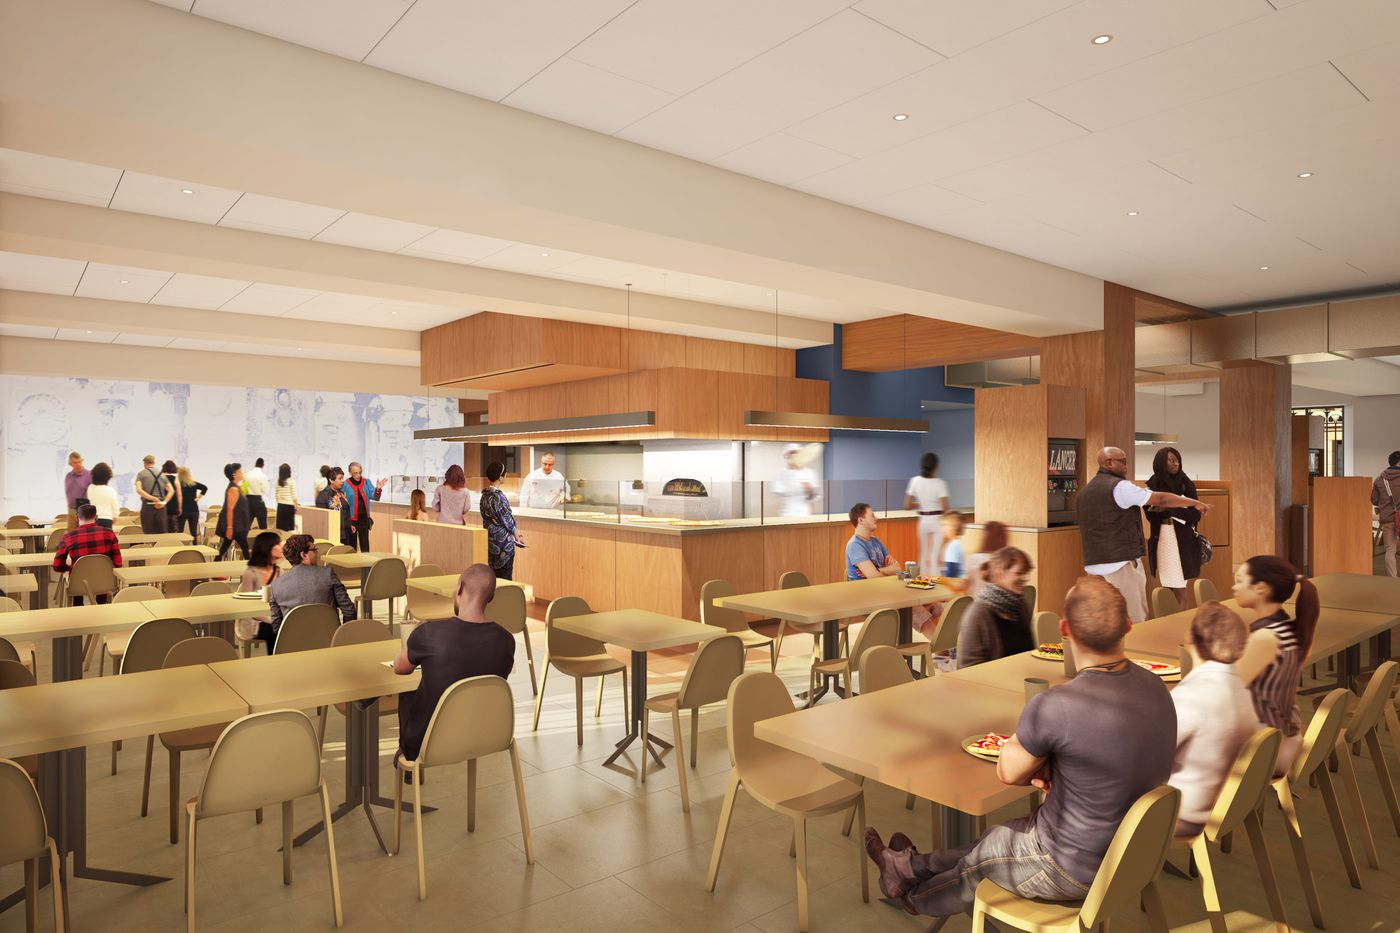 Artist S Rendering Of The Philadelphia Museum Art Cafeteria Designed By Frank Gehry